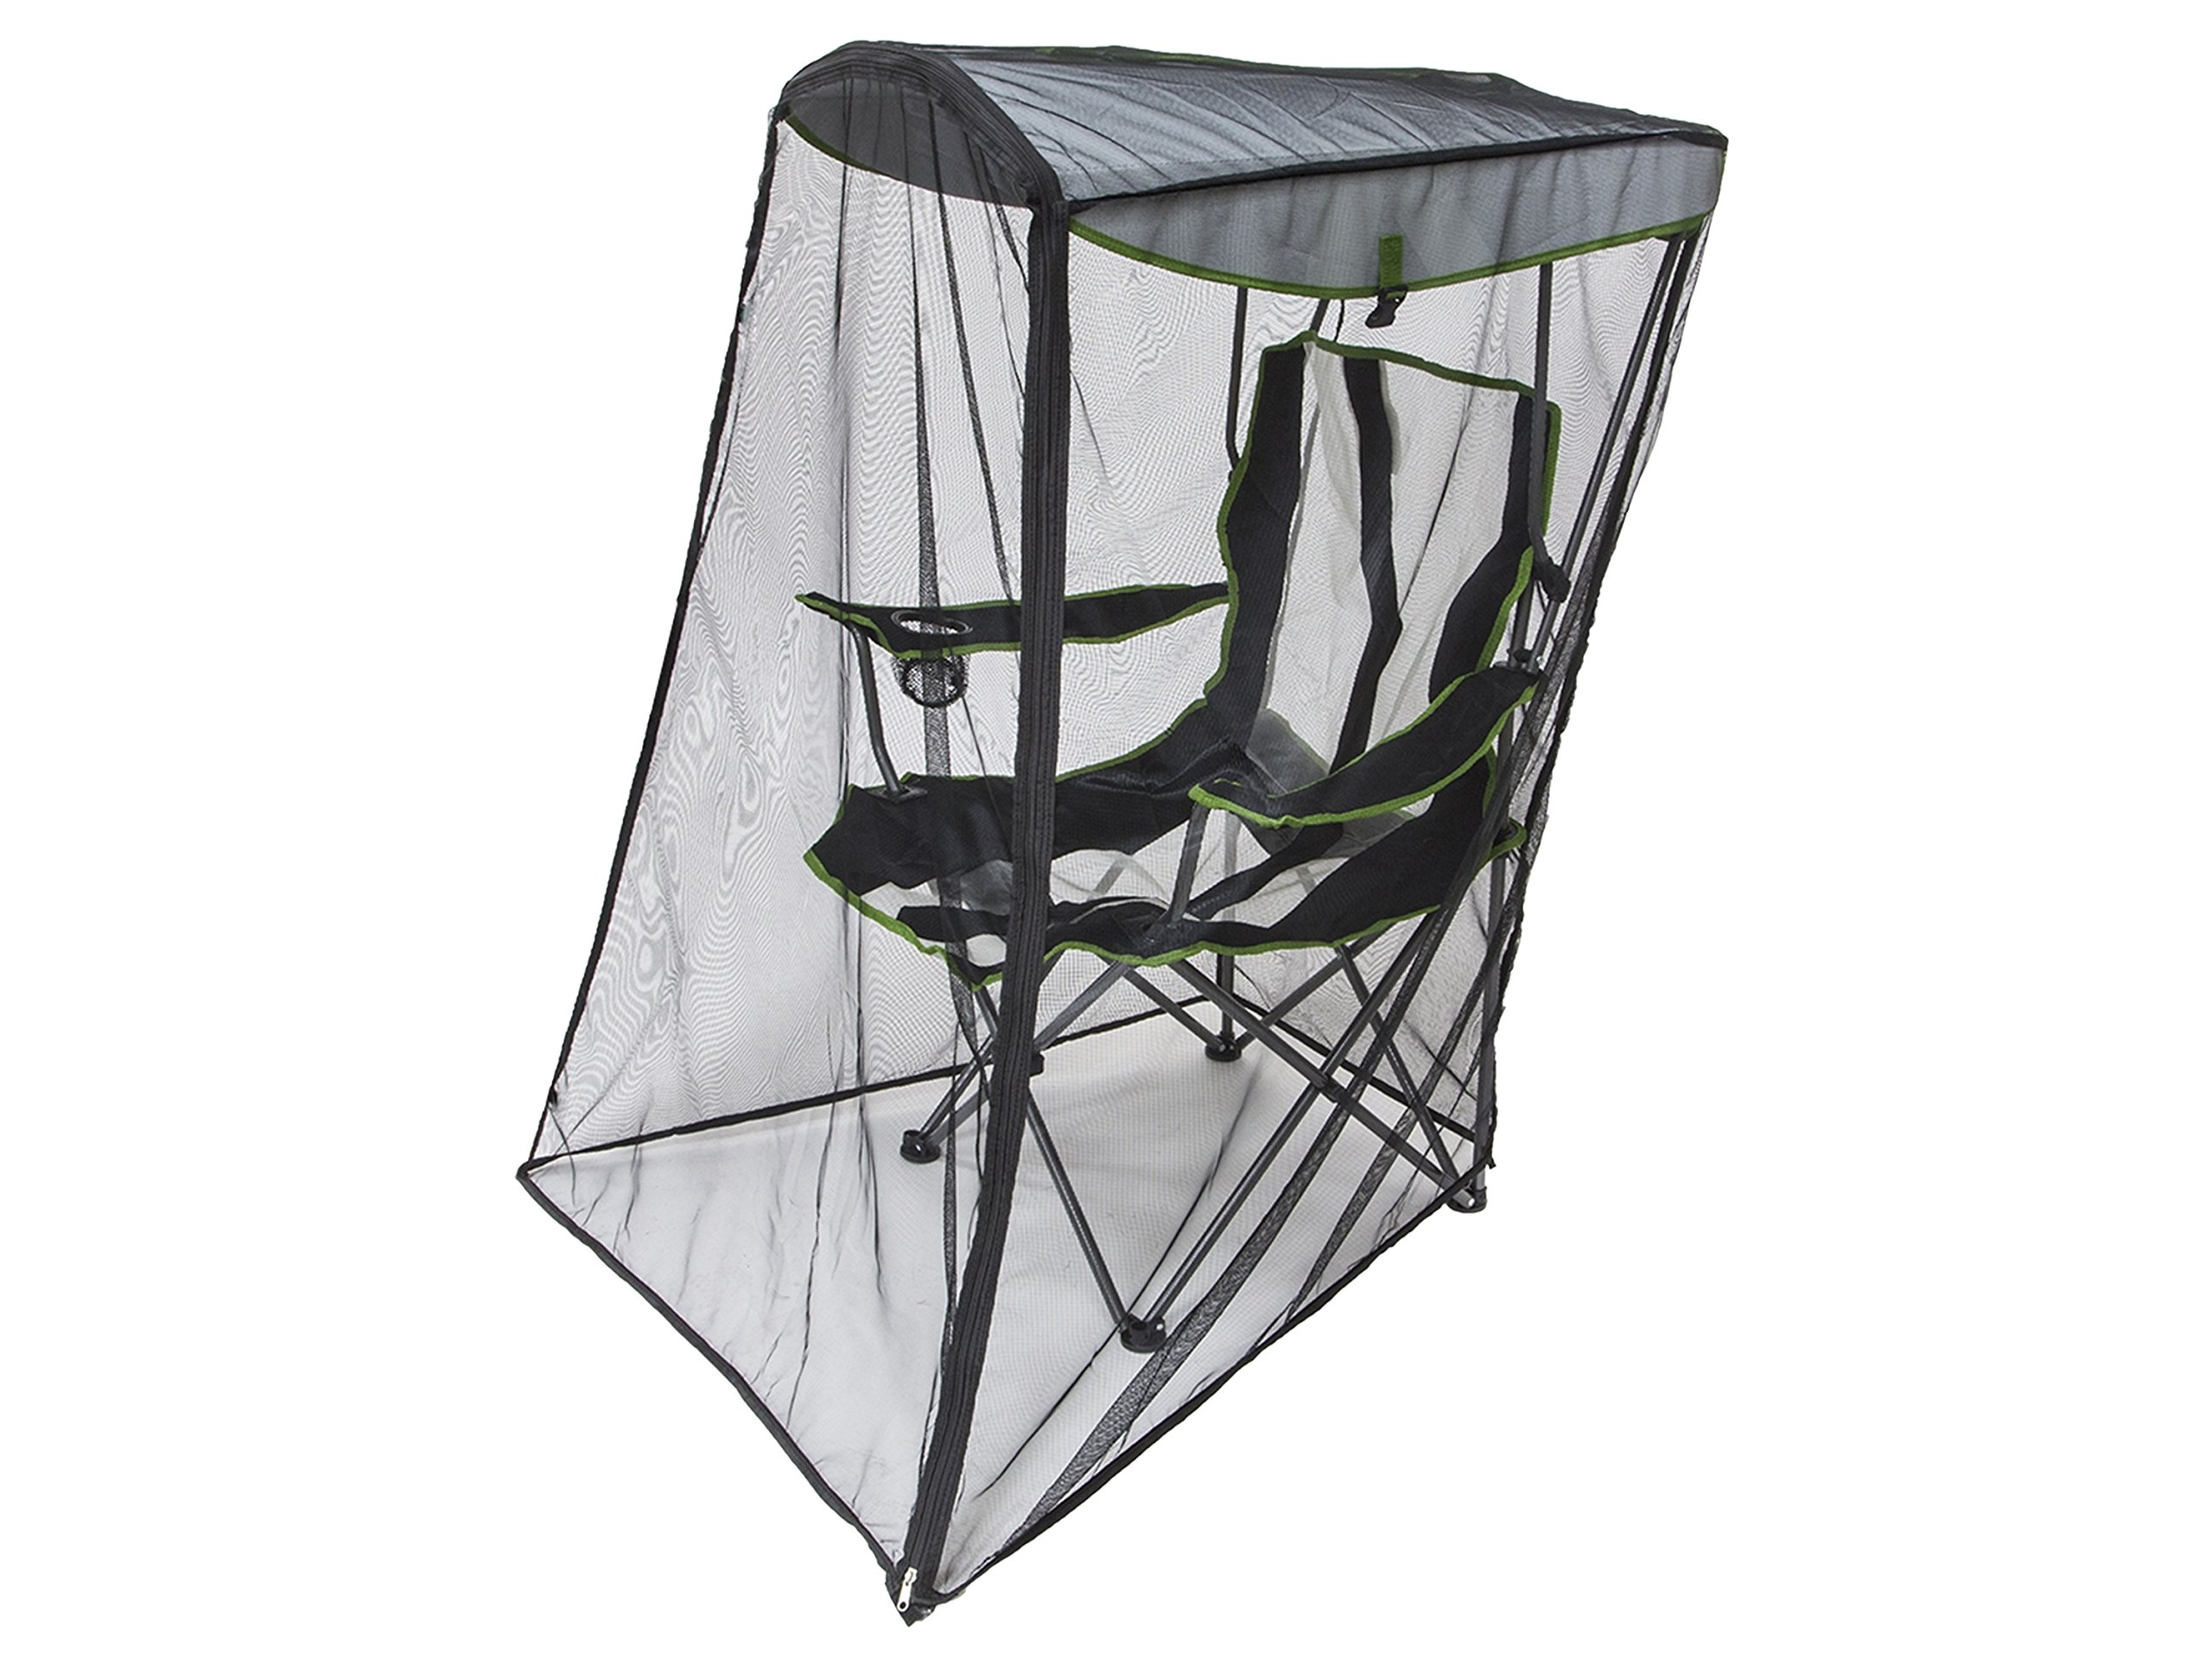 swimways premium canopy chair small bedroom nursing cheap best find deals on line at get quotations kelsyus original with bug guard